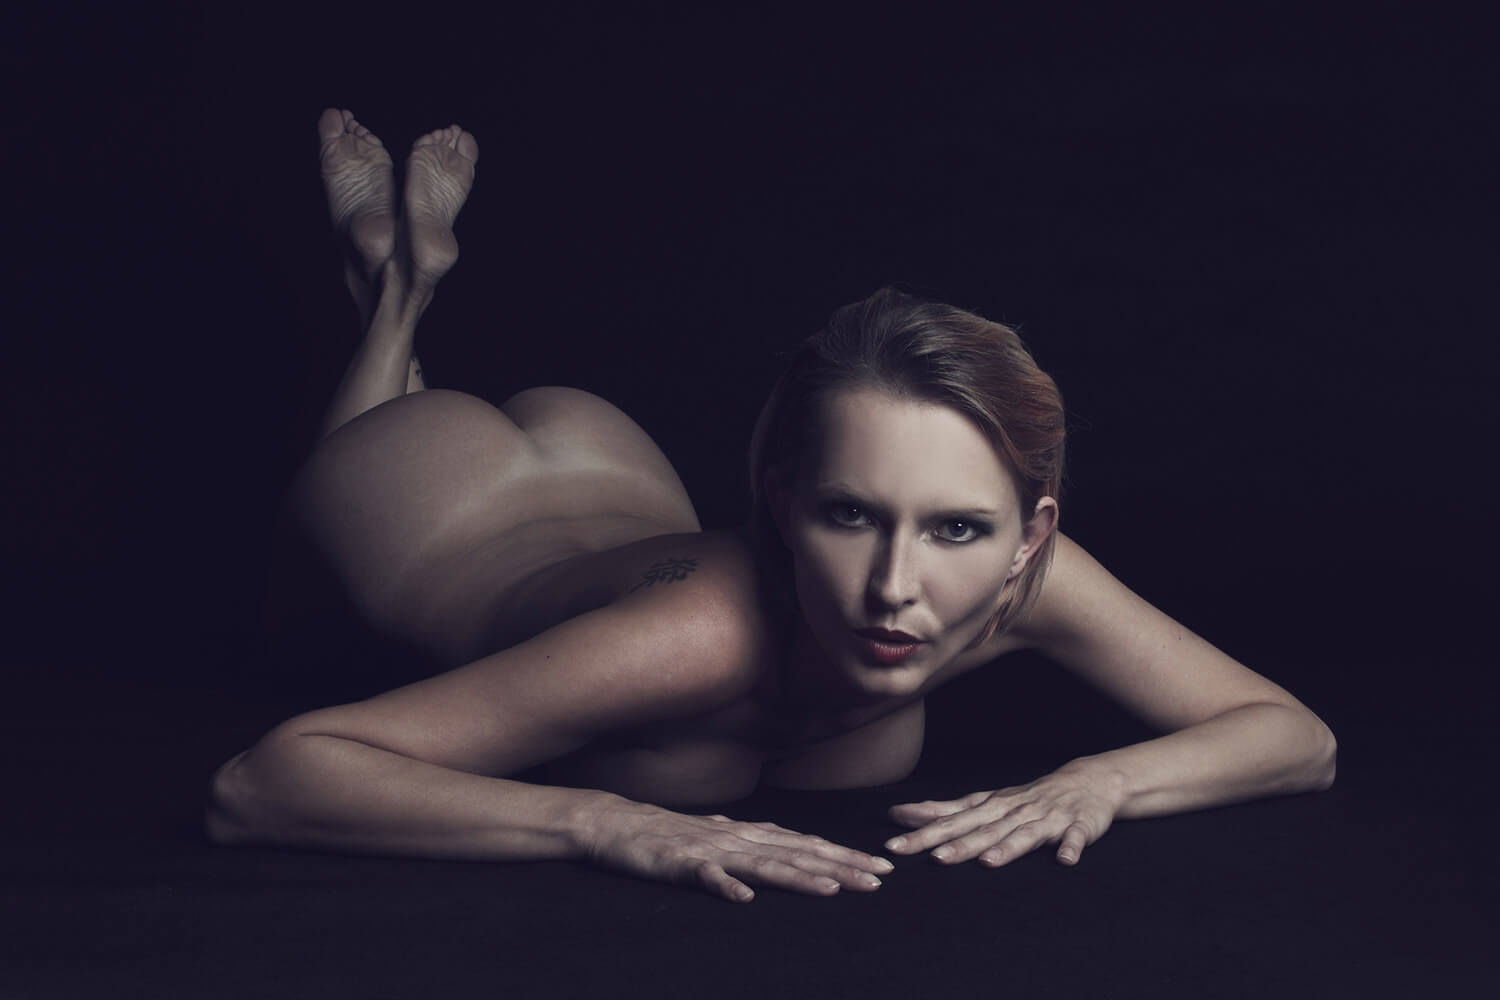 fine art nude of a woman lying on a dark background